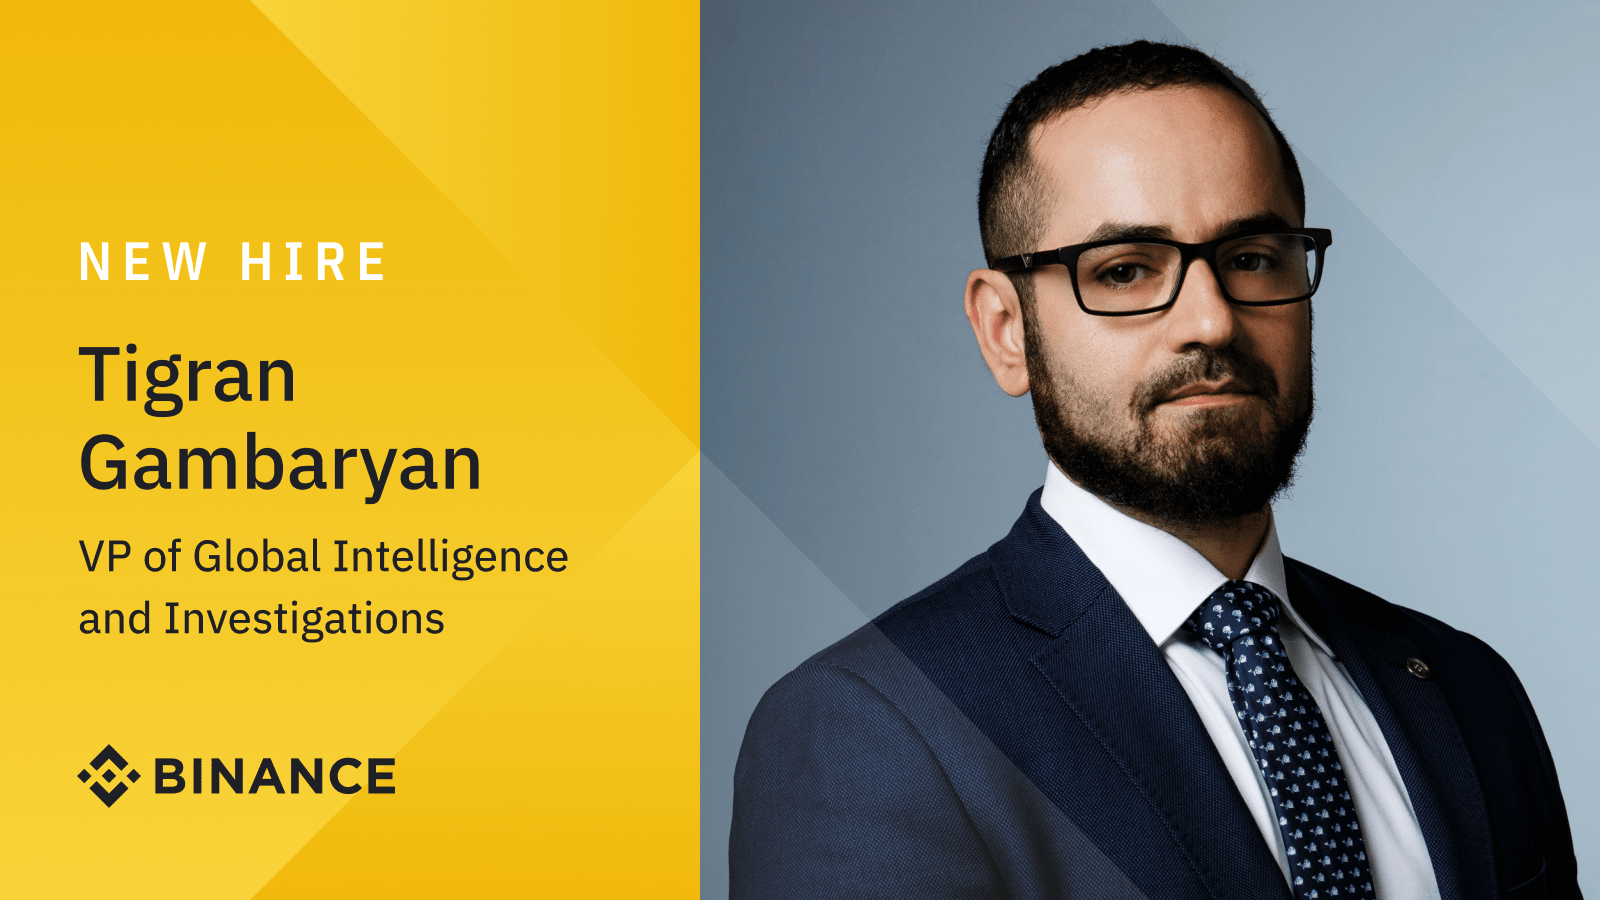 Former IRS-CI Special Agent Tigran Gambaryan joins Binance as VP of Global Intelligence and Investigations